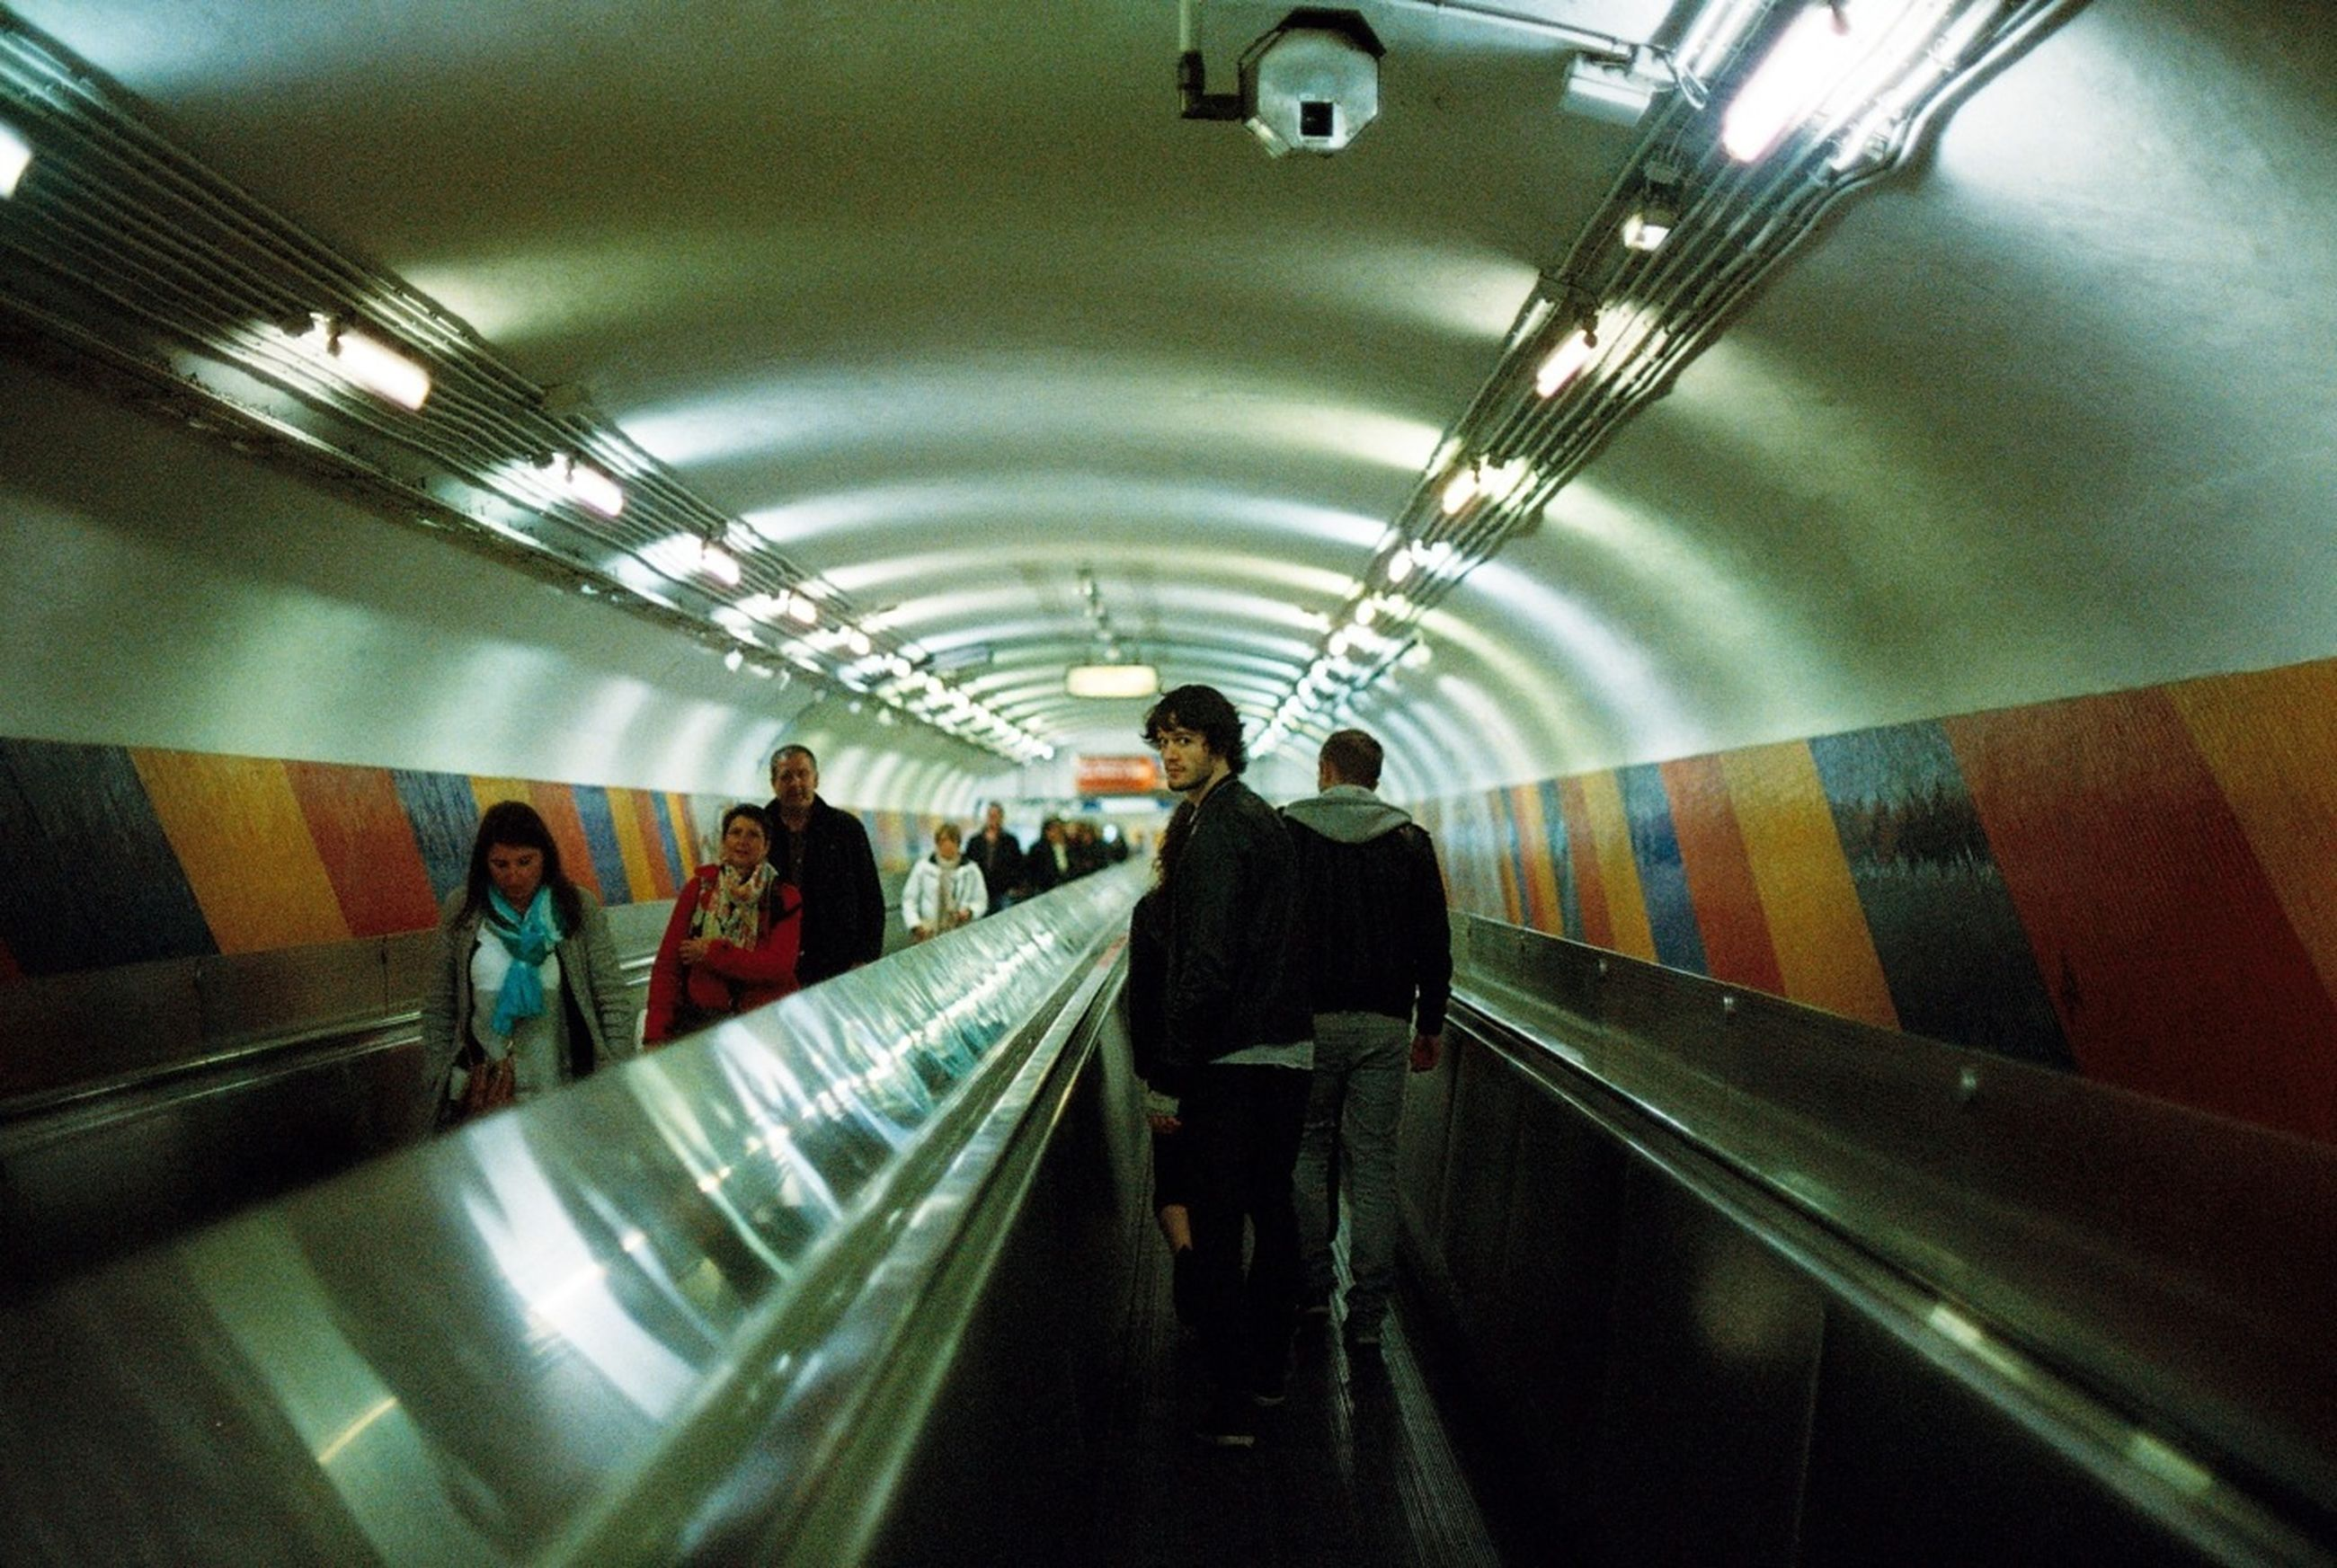 indoors, tunnel, illuminated, lifestyles, ceiling, full length, men, walking, rear view, subway, architecture, built structure, the way forward, leisure activity, escalator, lighting equipment, subway station, person